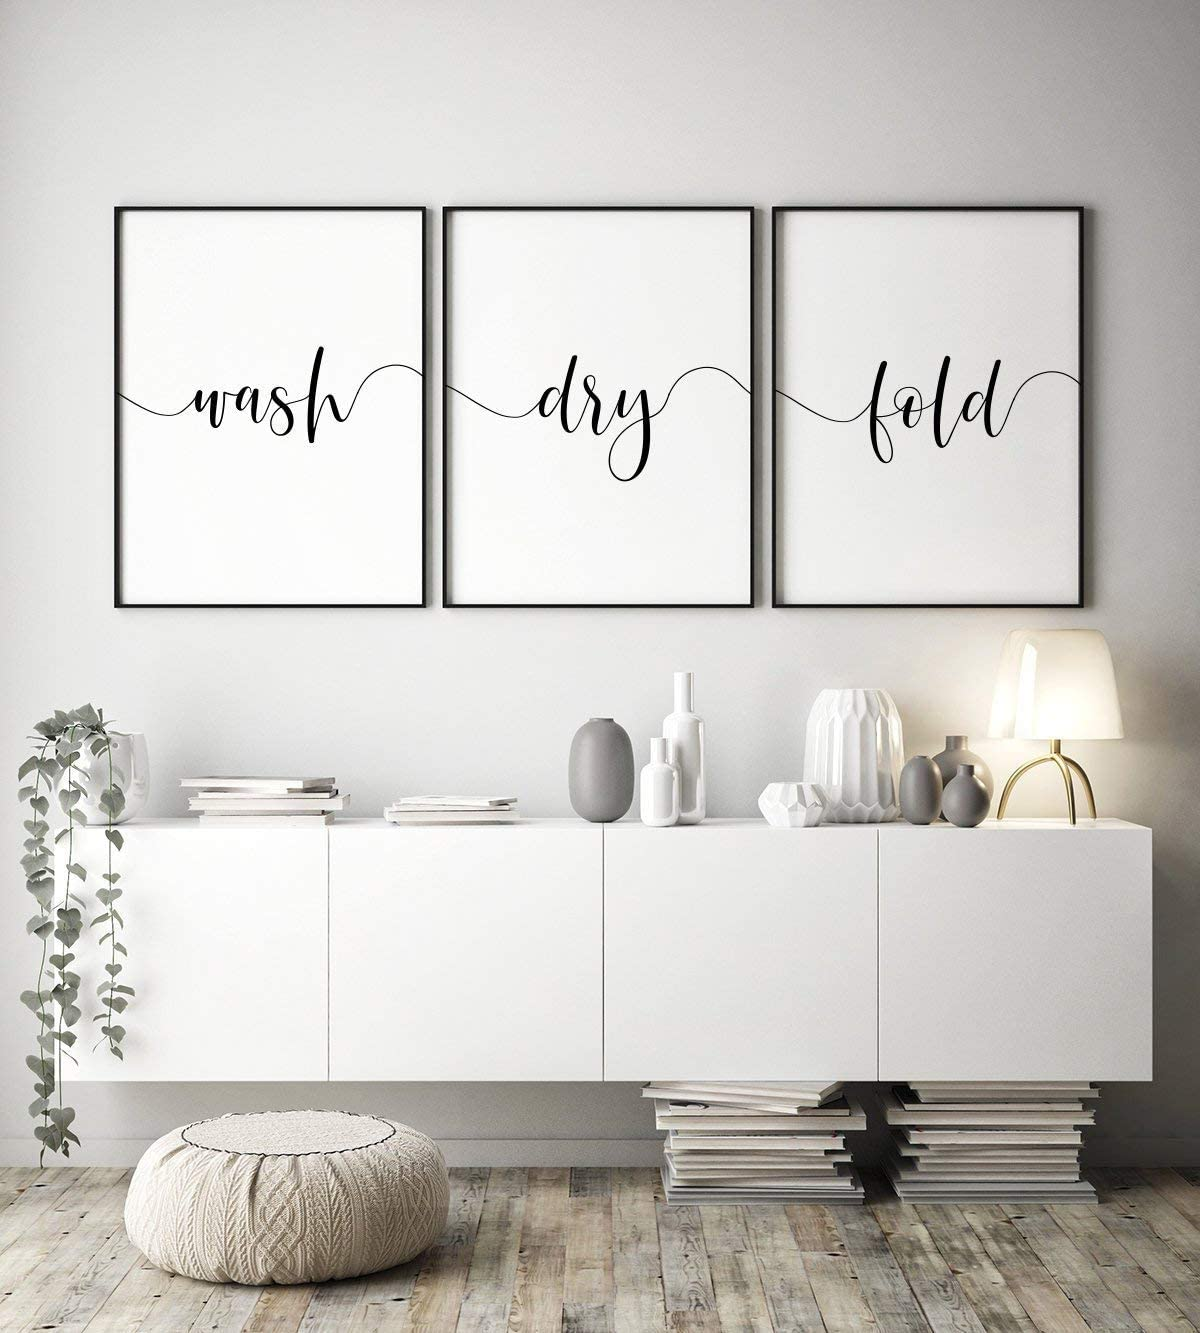 Malertaart Wash Dry Fold Set Of 3 Printables Laundry Print Triptych Wall Art Laundry Room Decor Laundry Sign 3 Piece Prints Instant Download Framed Wall Art Amazon Ca Baby